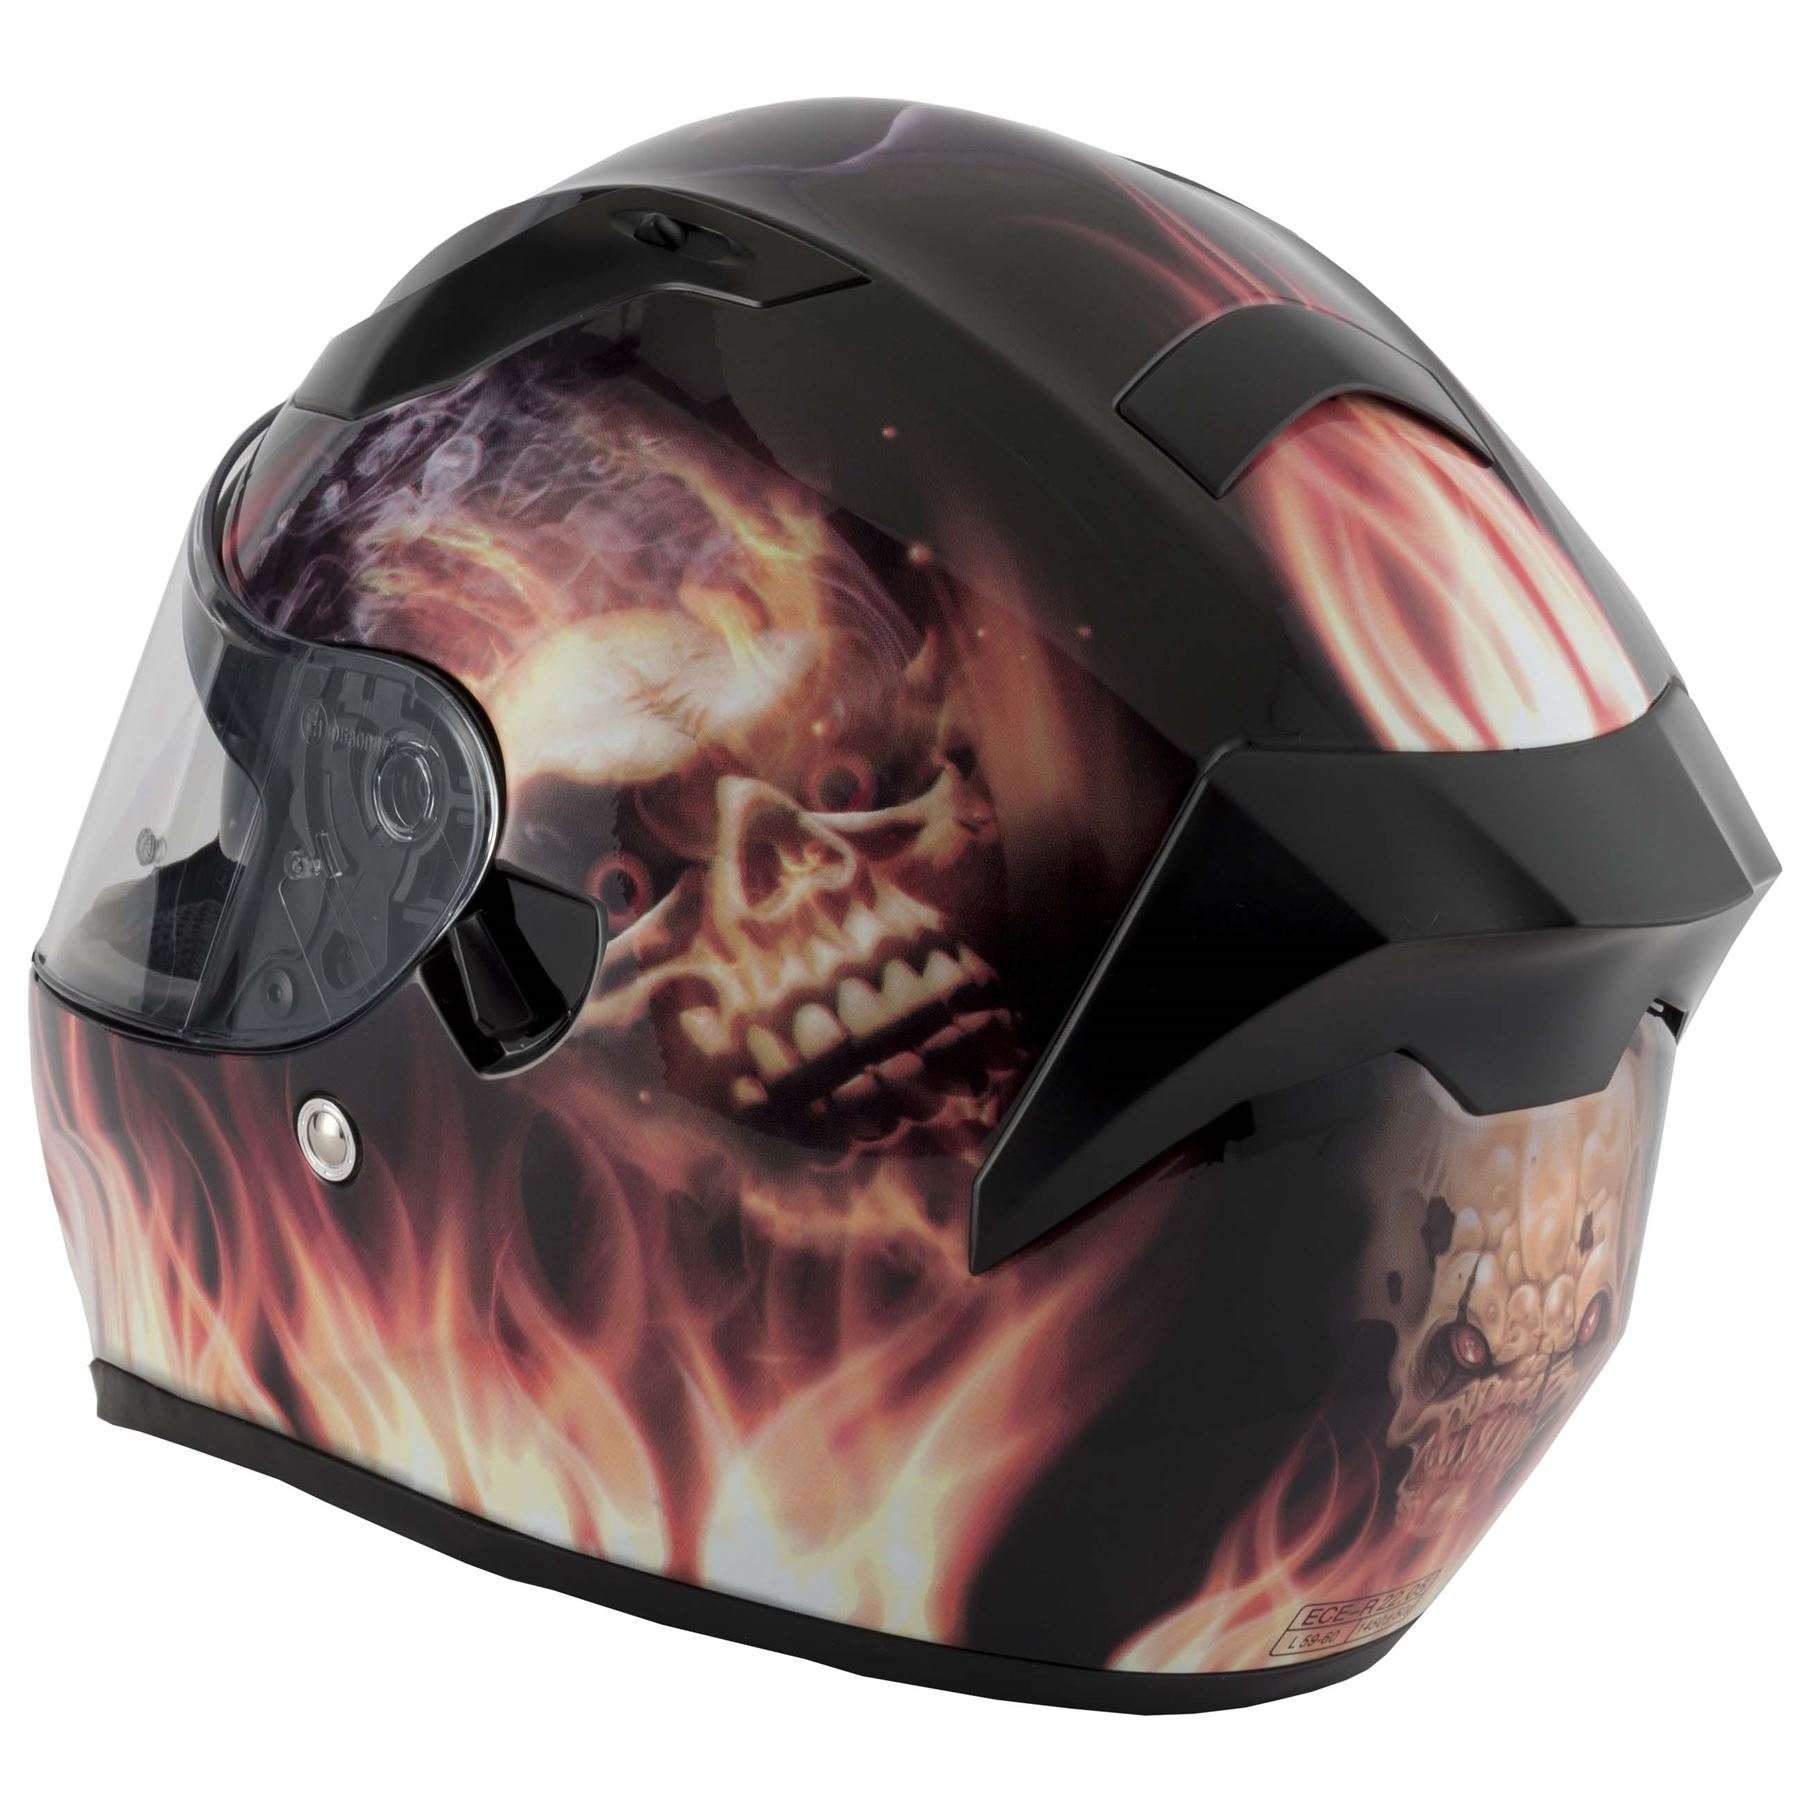 thumbnail 16 - VCAN V128 Dragon Skull Monster Motorcycle Bike Helmet With Drop Down Sun Visor